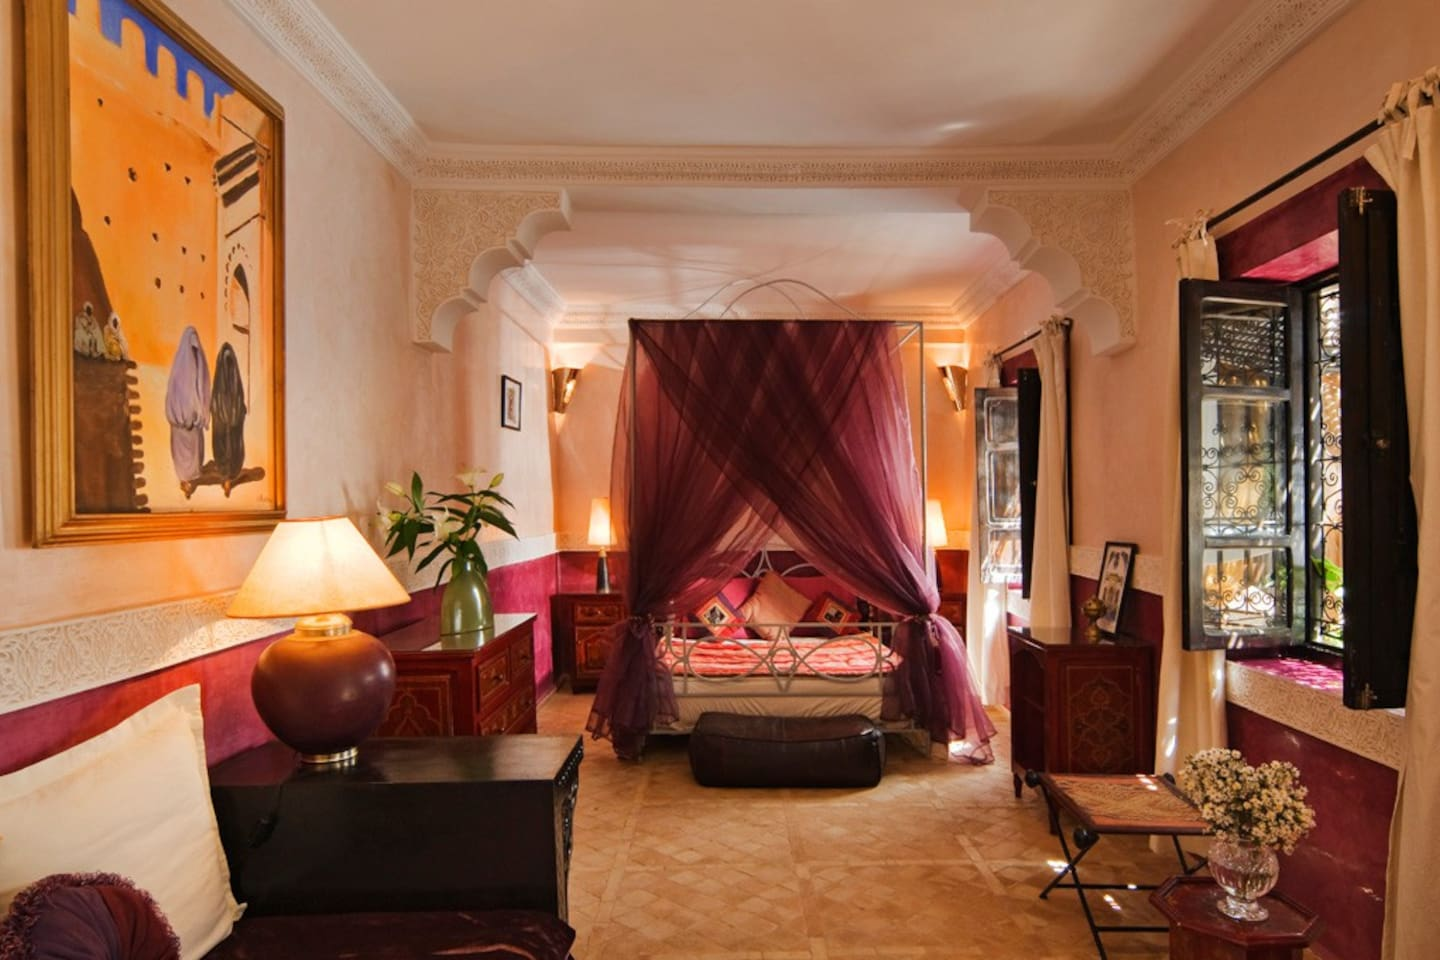 the spacious and romantic second-floor Joutia Zrabi Suite is popular with couples seeking a romantic getaway.  Given the room size, it's large enough to accommodate a family of four.